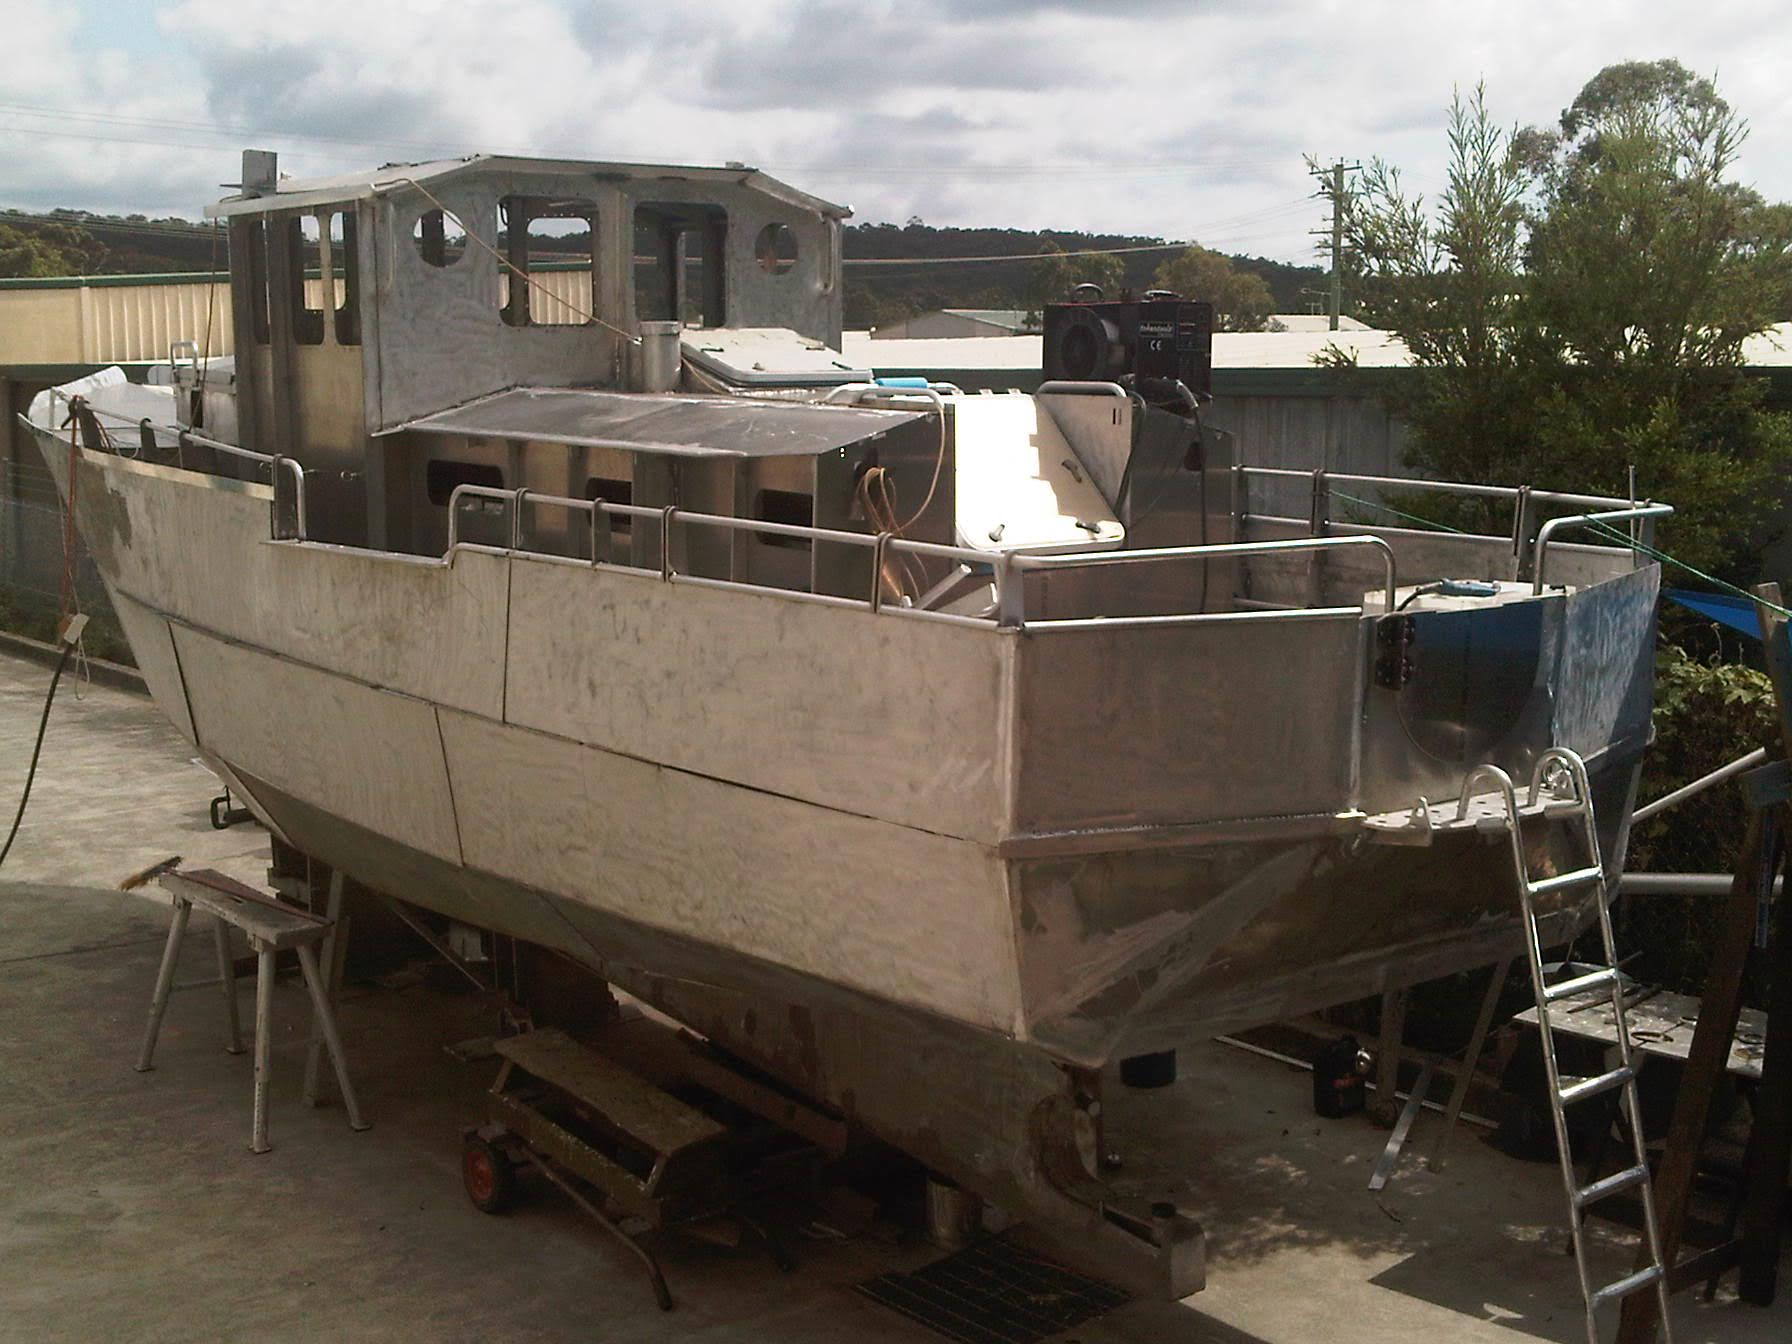 Arne boat build progressing in 2012 with Tokentools MIG Welder atop the vessel